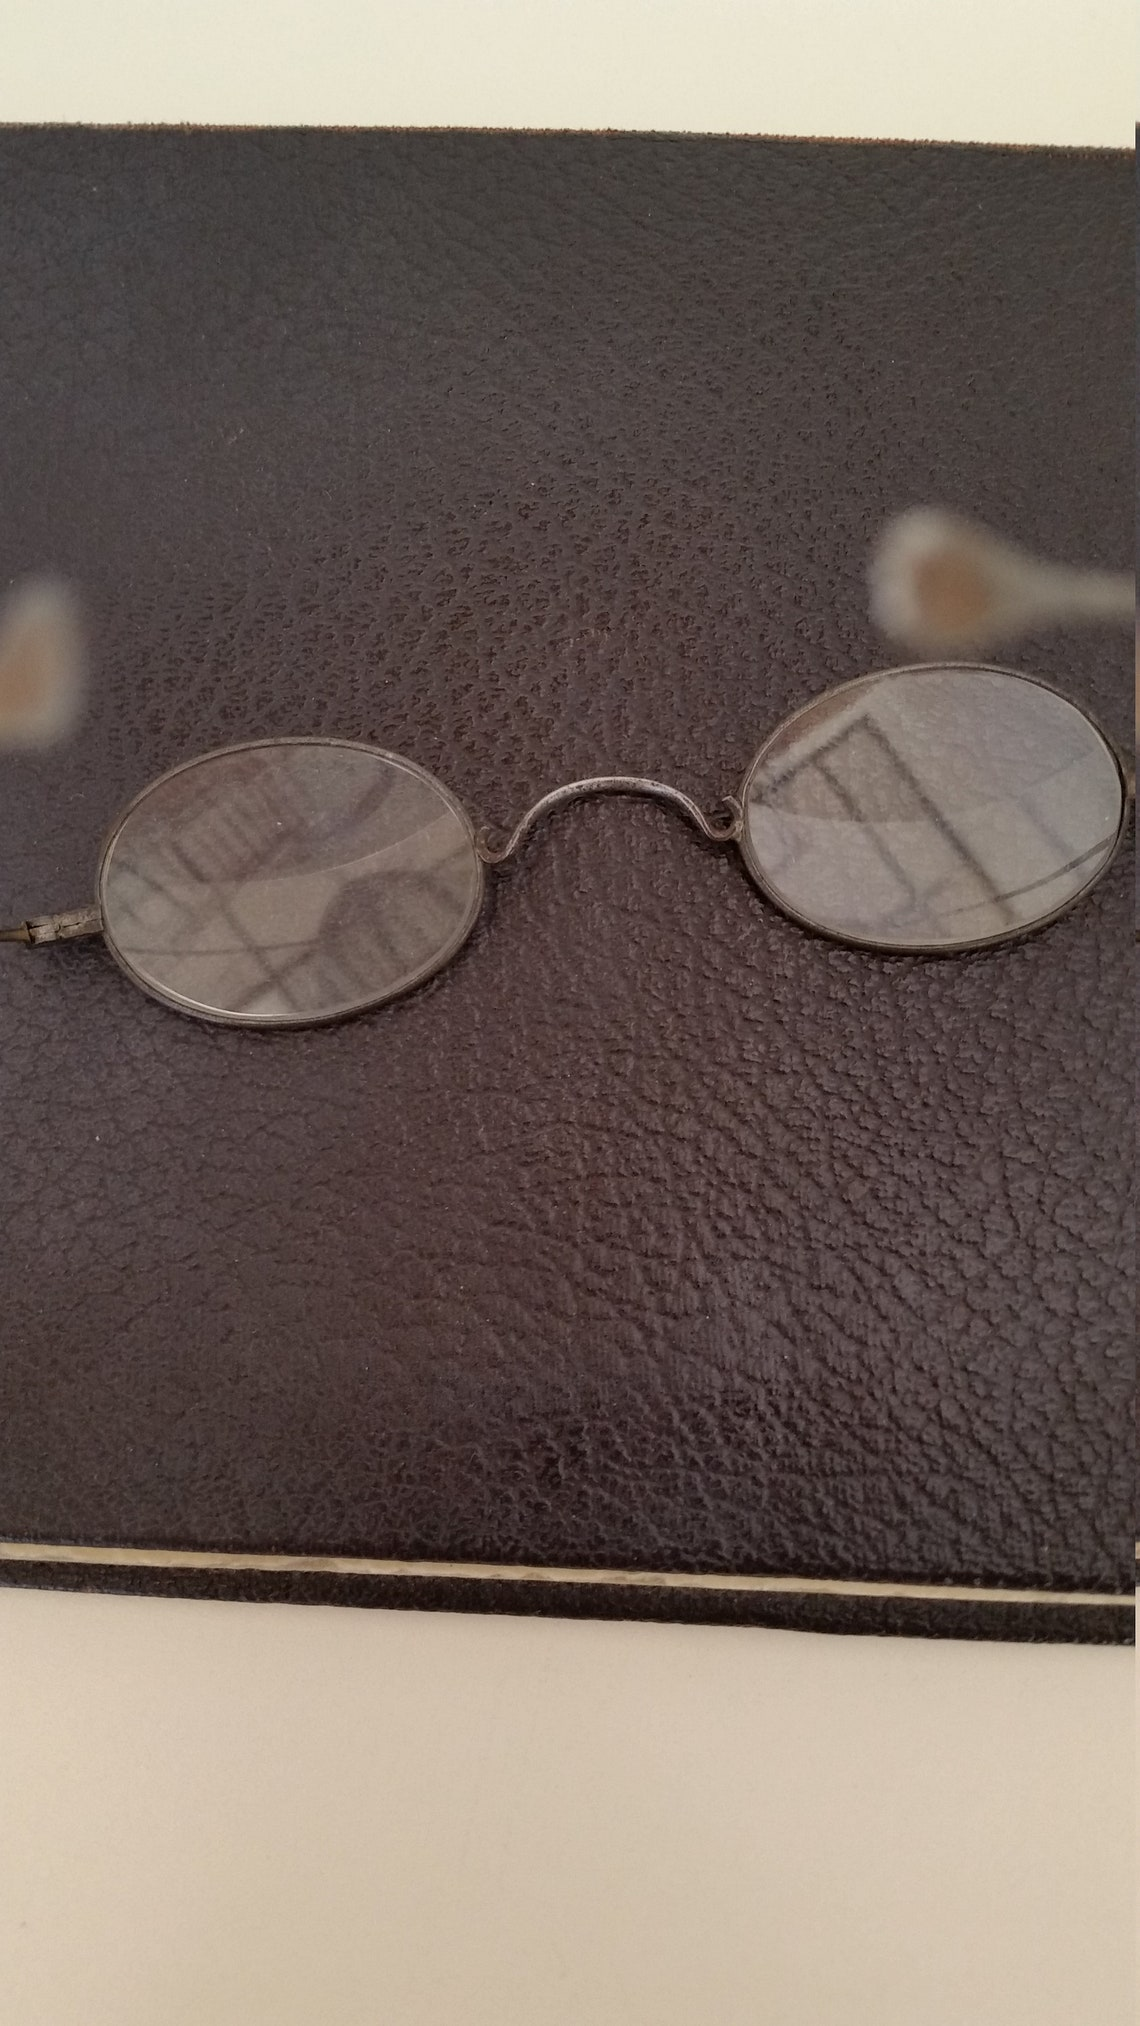 1800s Bifocal Reading Glasses; +1.50 Upper/+3.50 Lower Strength; Ready to Wear; Good Condition; Reenactors; Read Description for Sizing